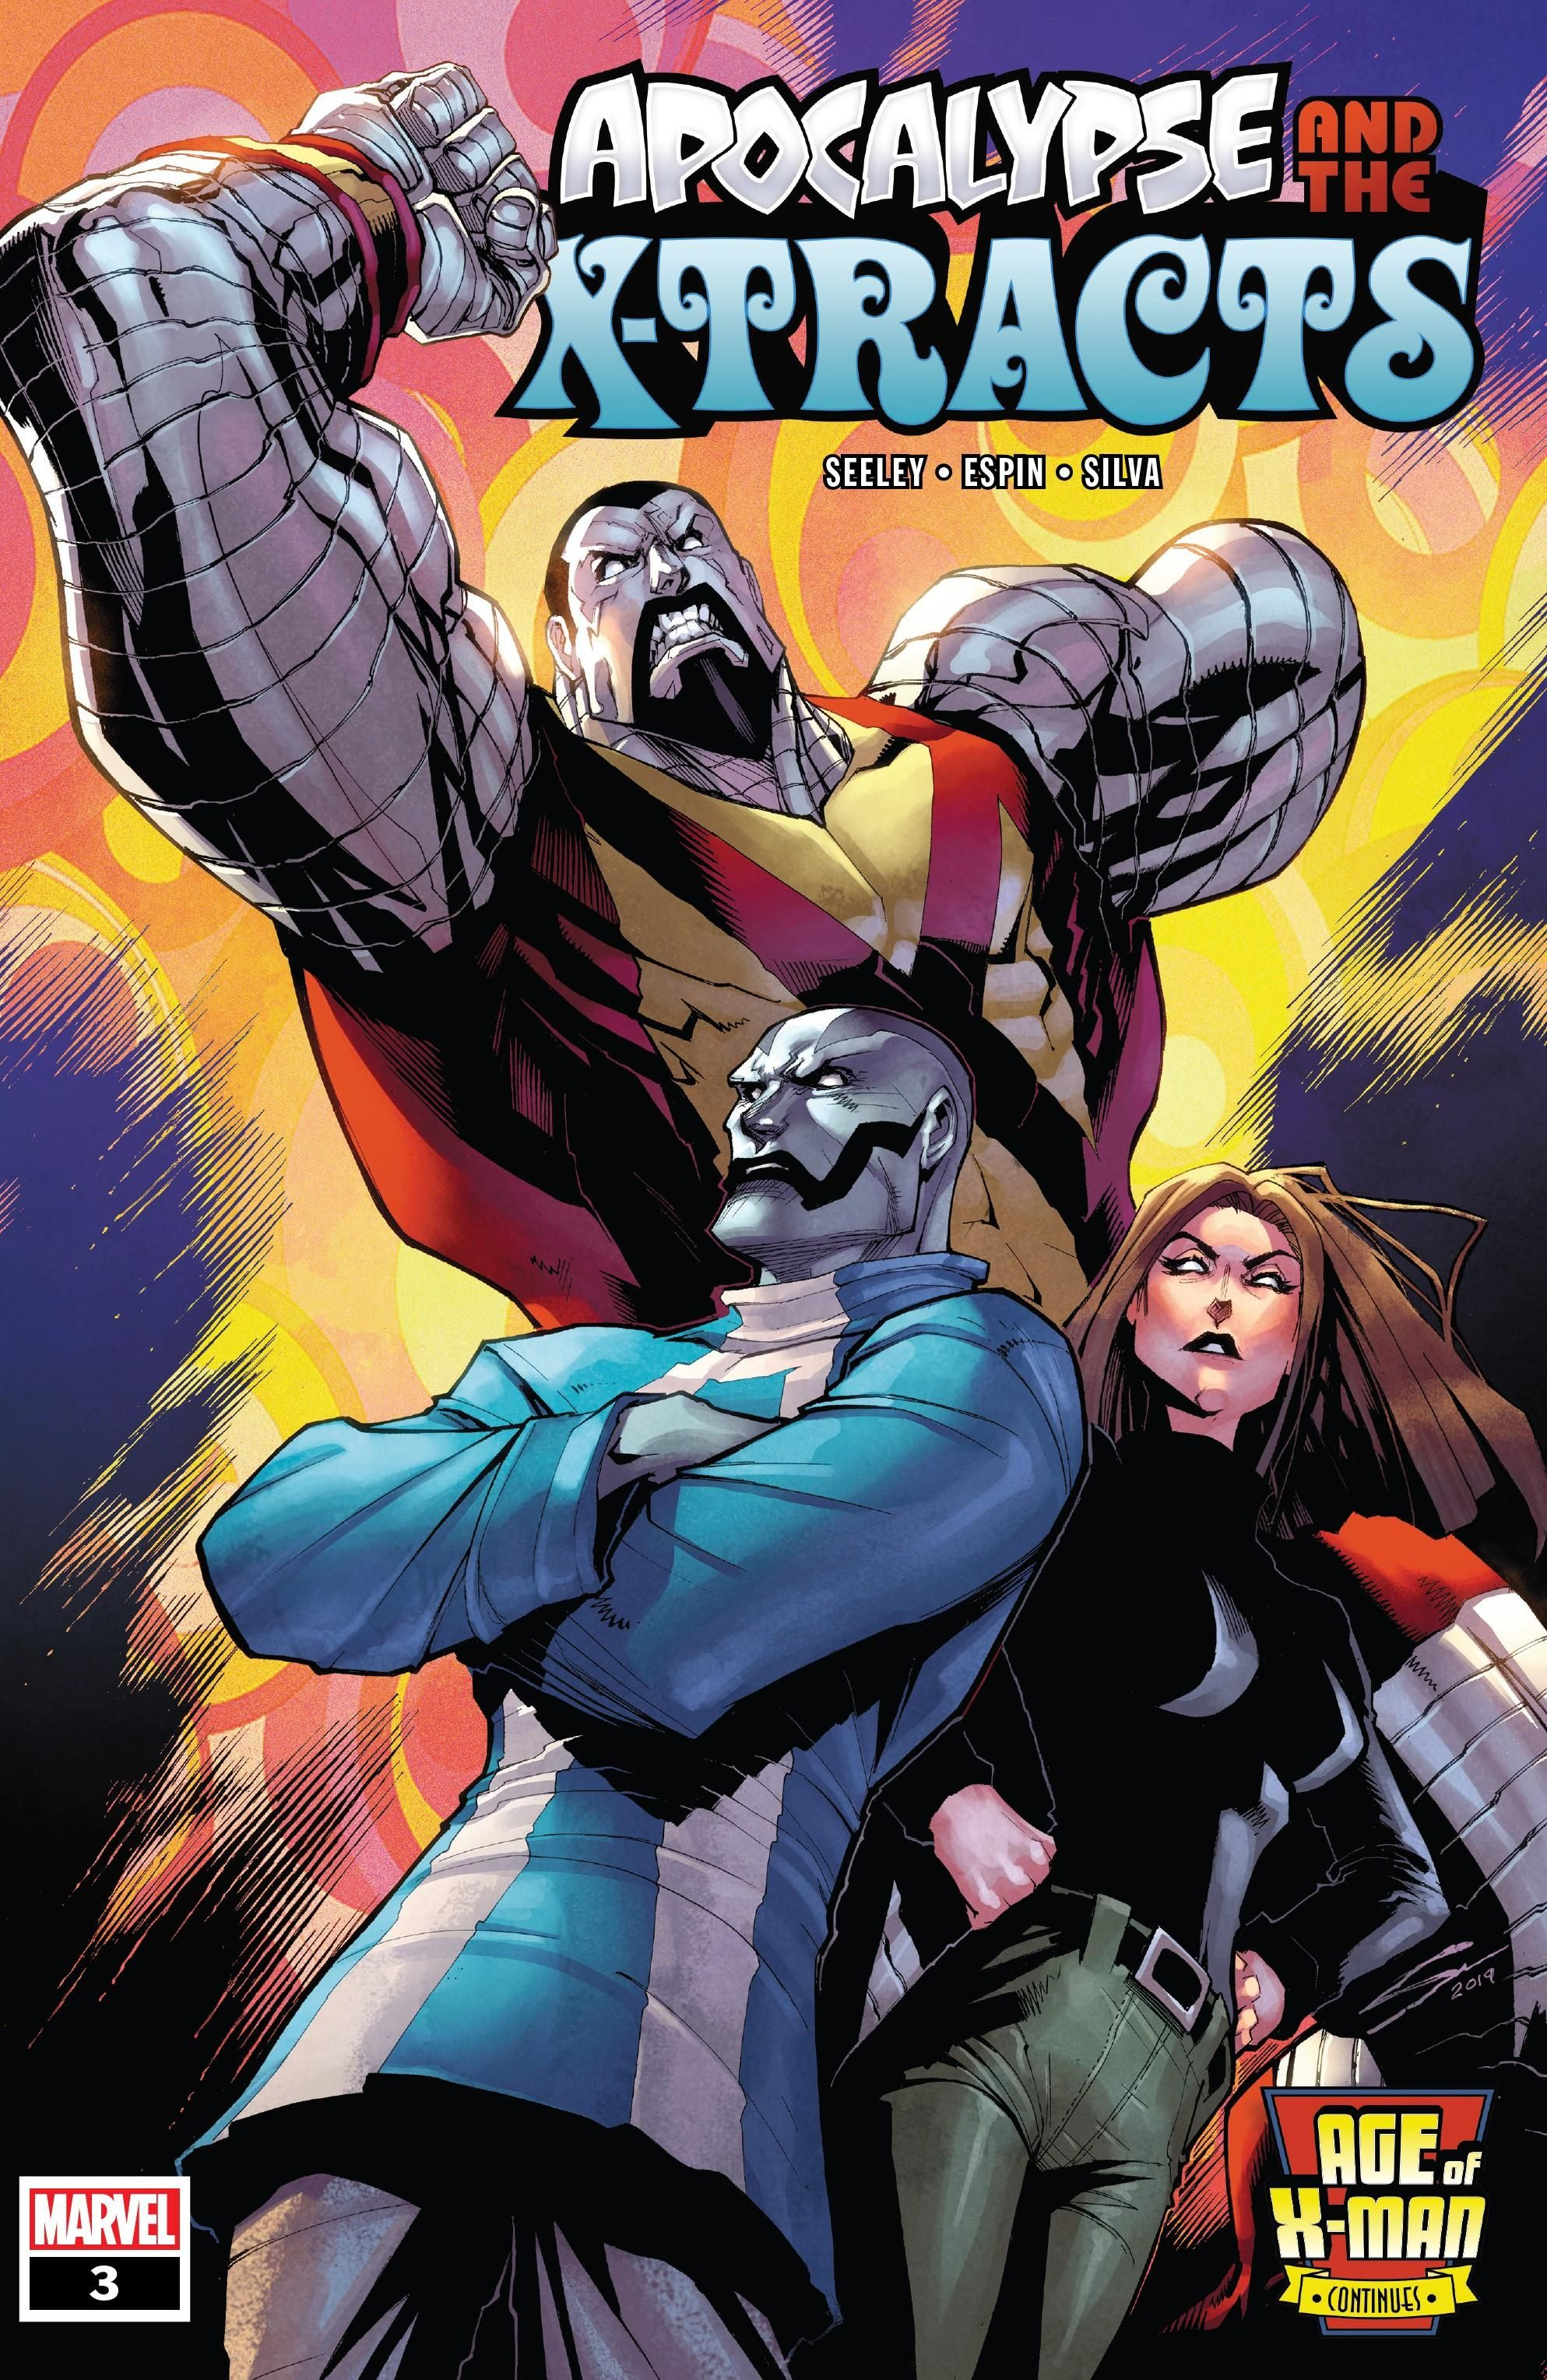 Age of X-Man: Apocalypse & the X-Tracts Vol 1 3